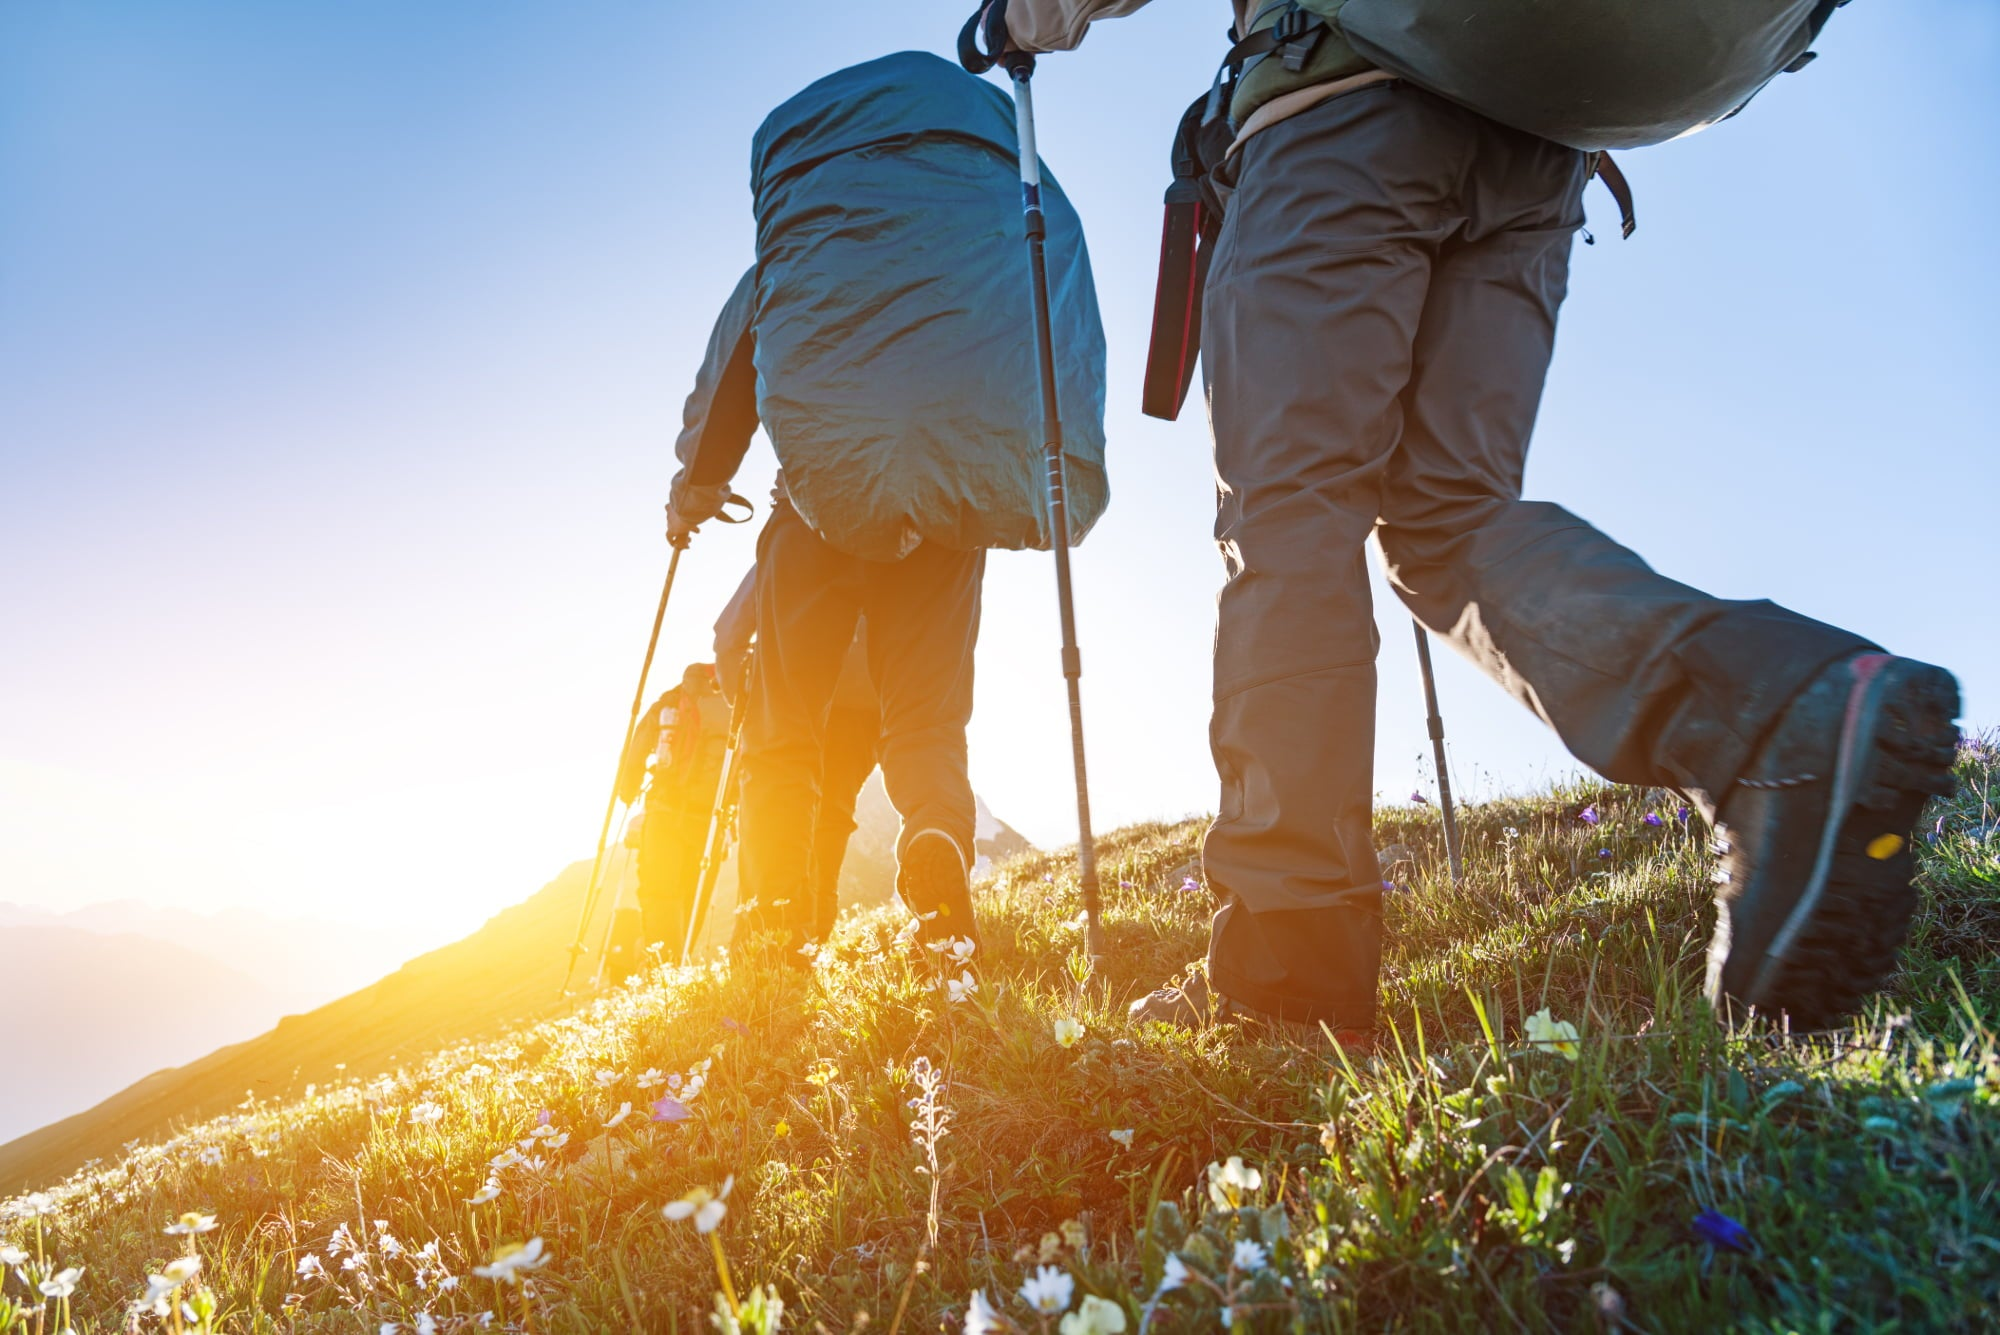 Ground view of three hikers making their way up a mountain trail through wildflowers with backpacking packs and trekking poles.